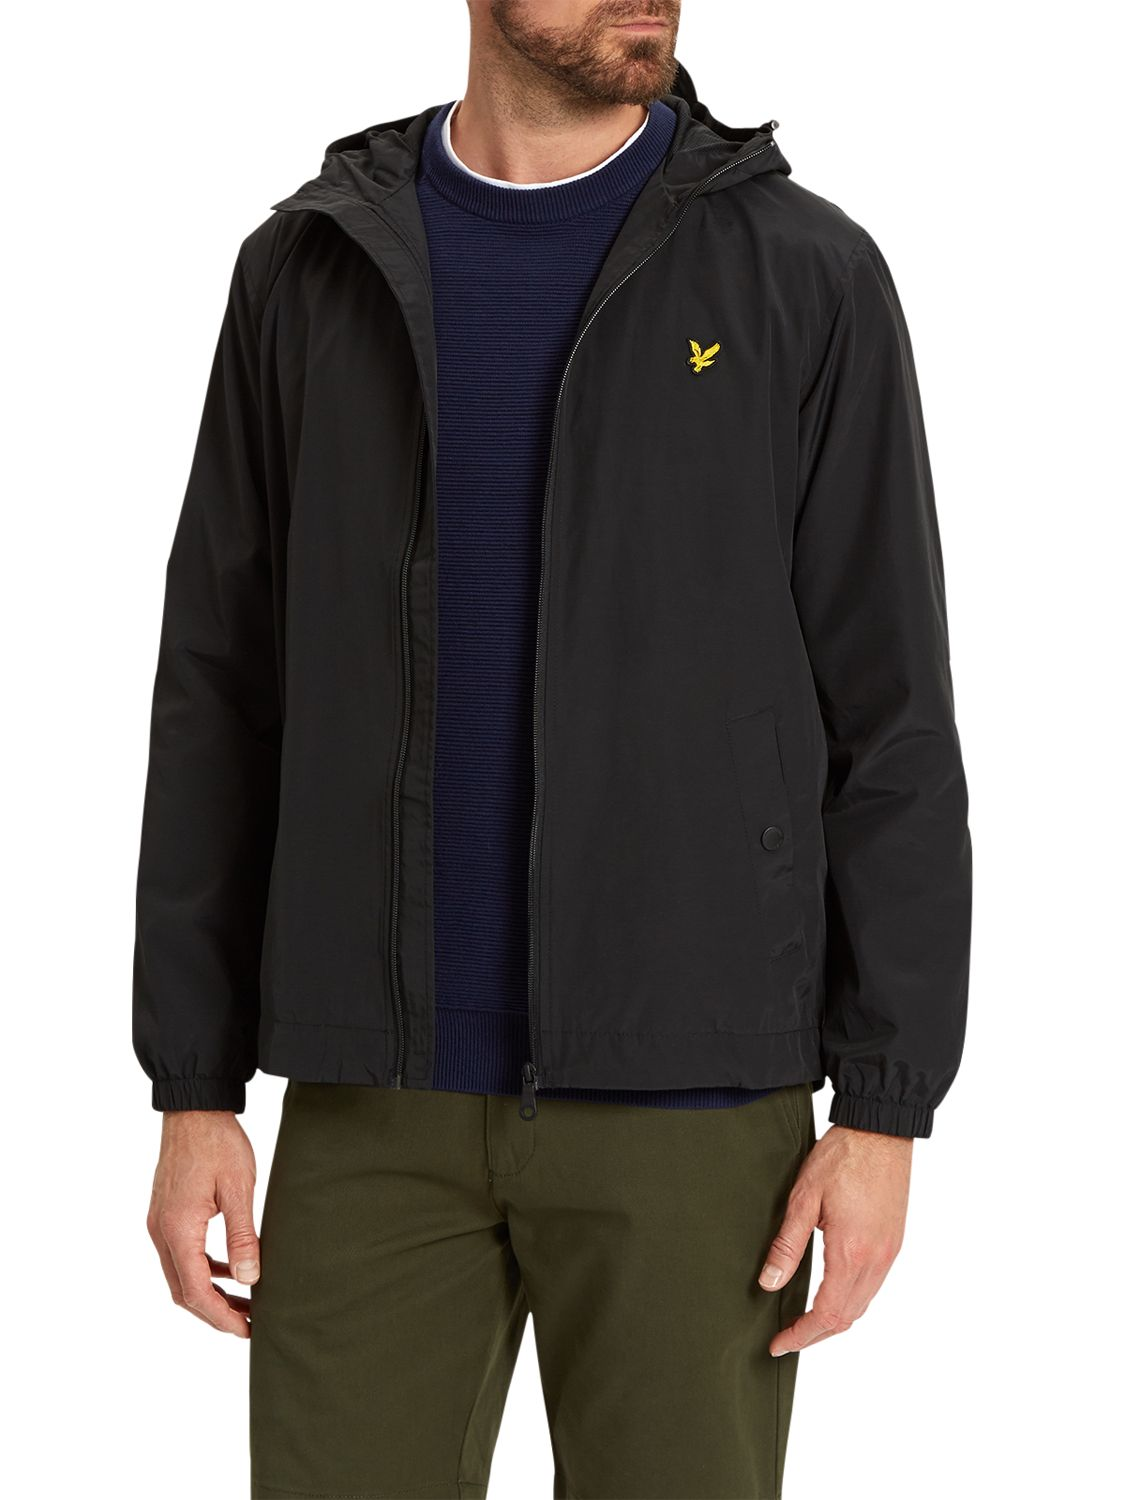 Lyle & Scott Lyle & Scott Zip Through Hooded Jacket, True Black